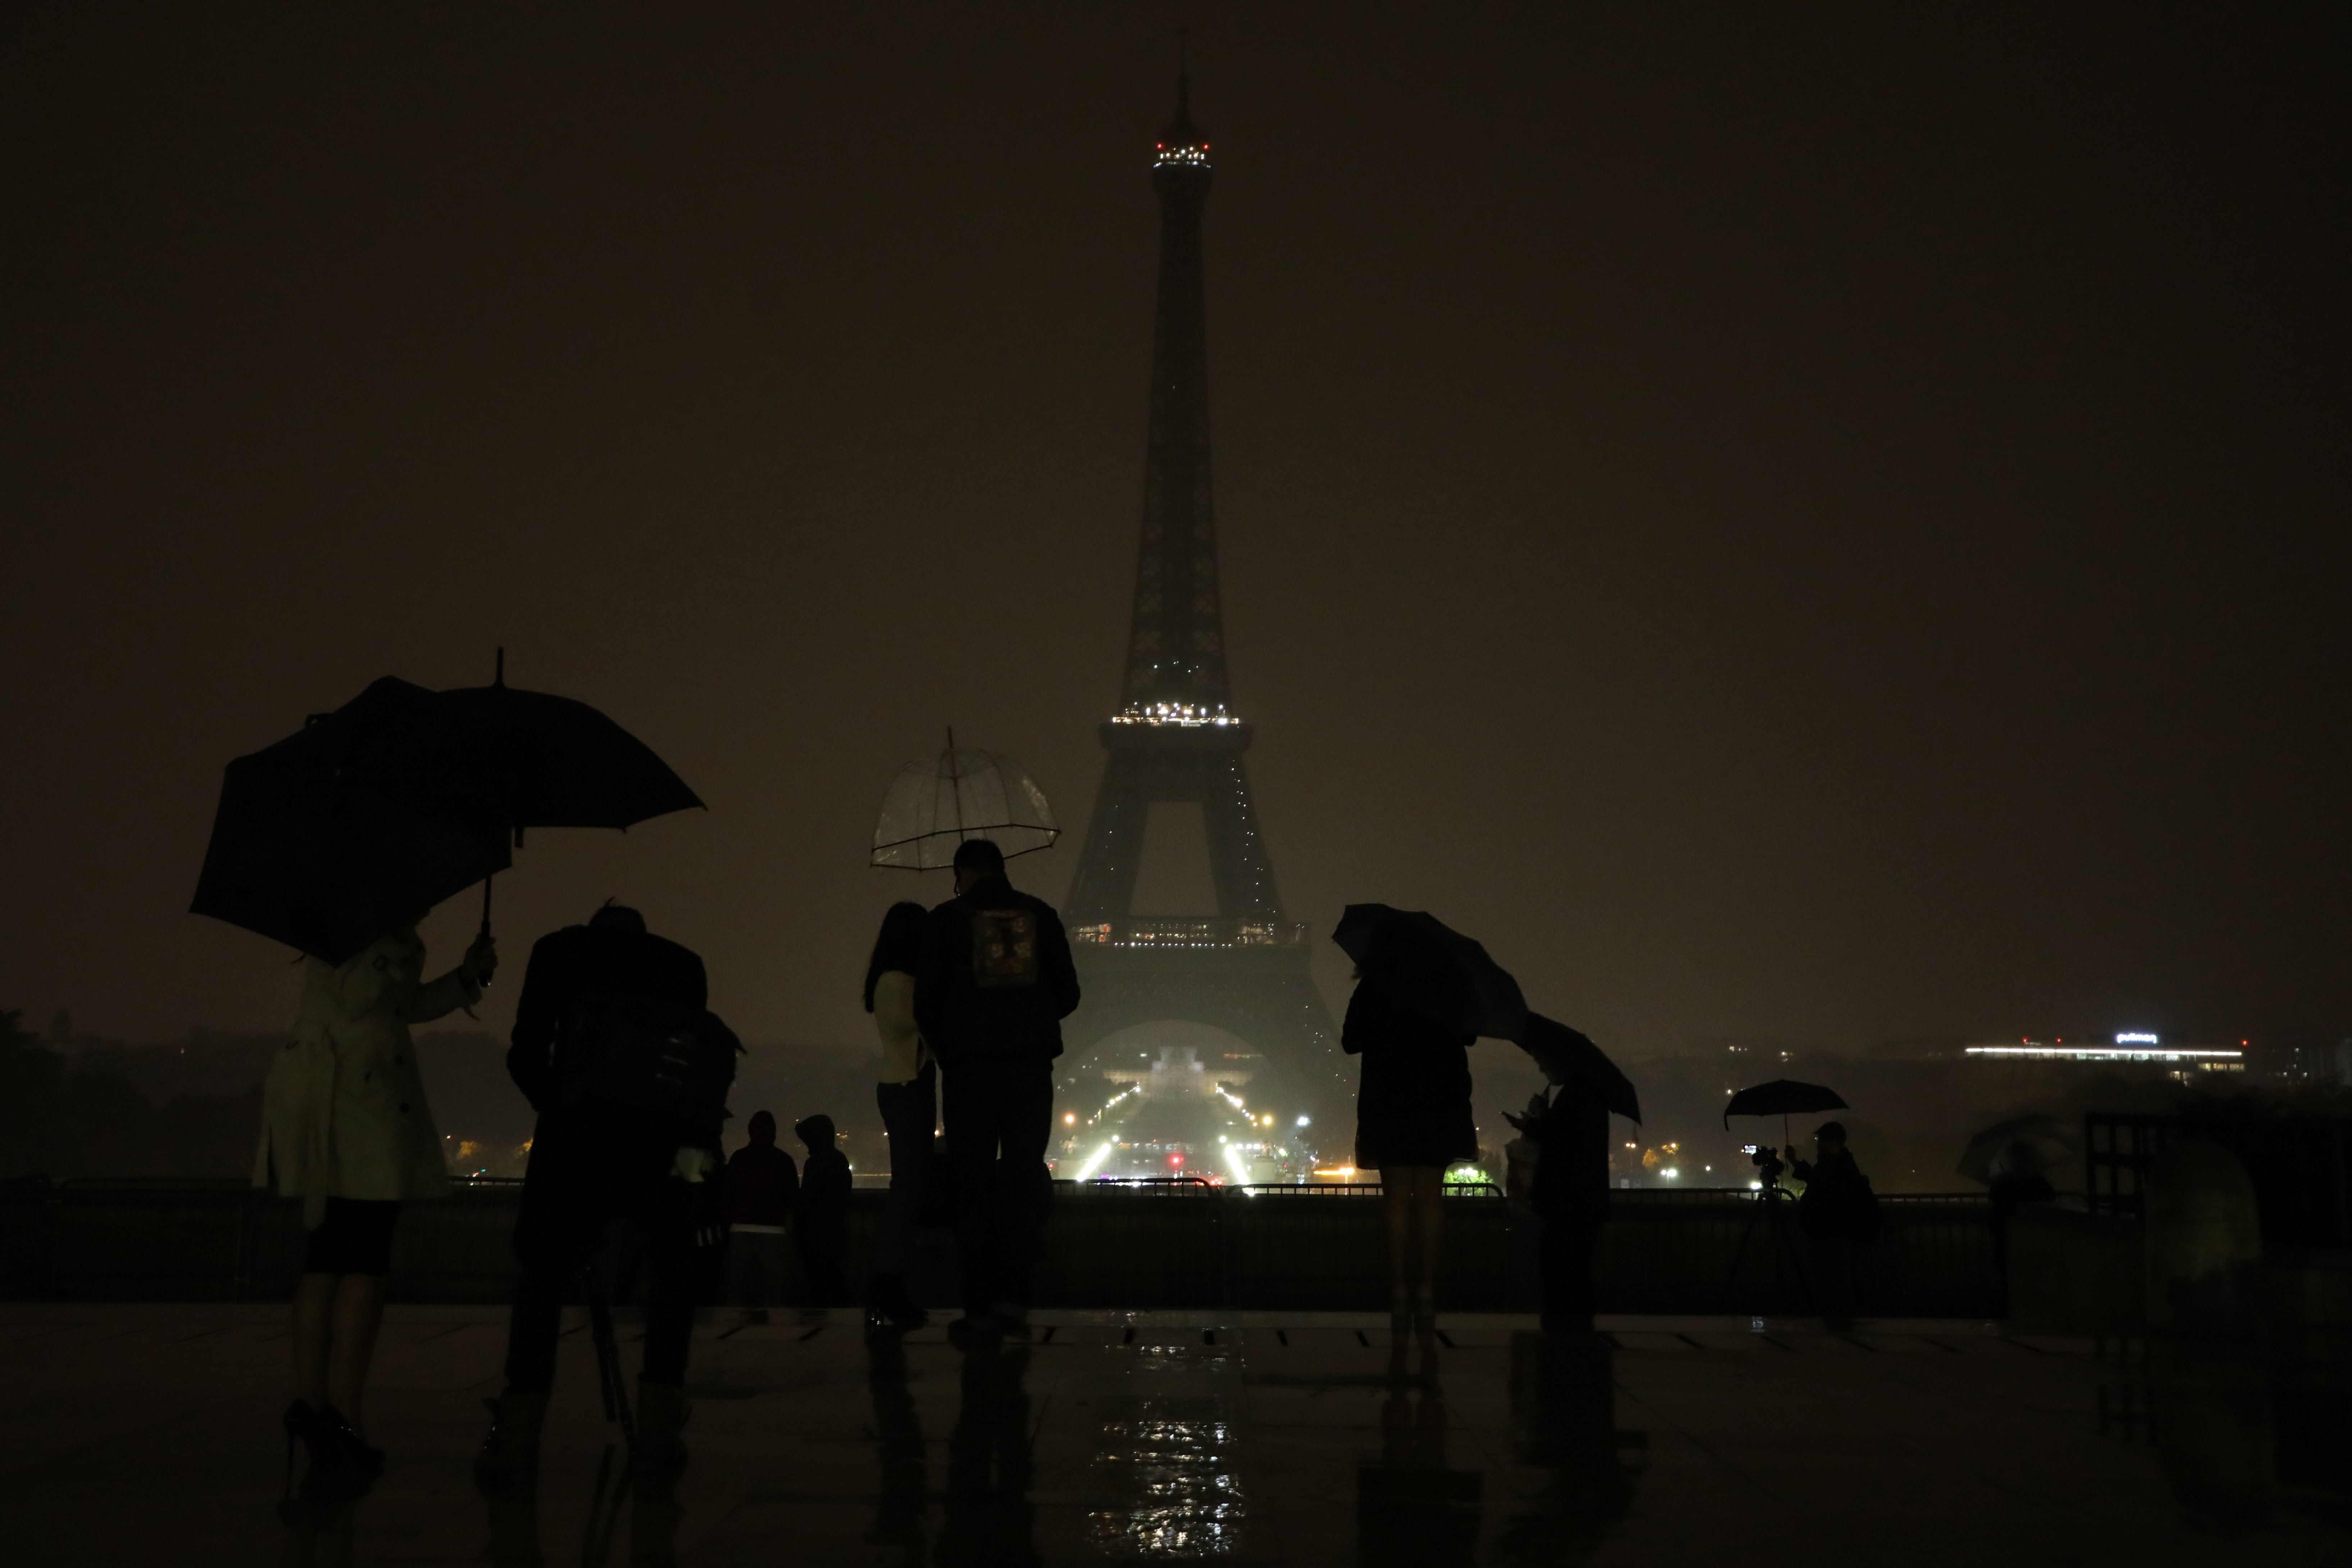 The lights of the Eiffel Tower in Paris were switched off on October 2, 2017 in tribute to the victims of the attacks in Las